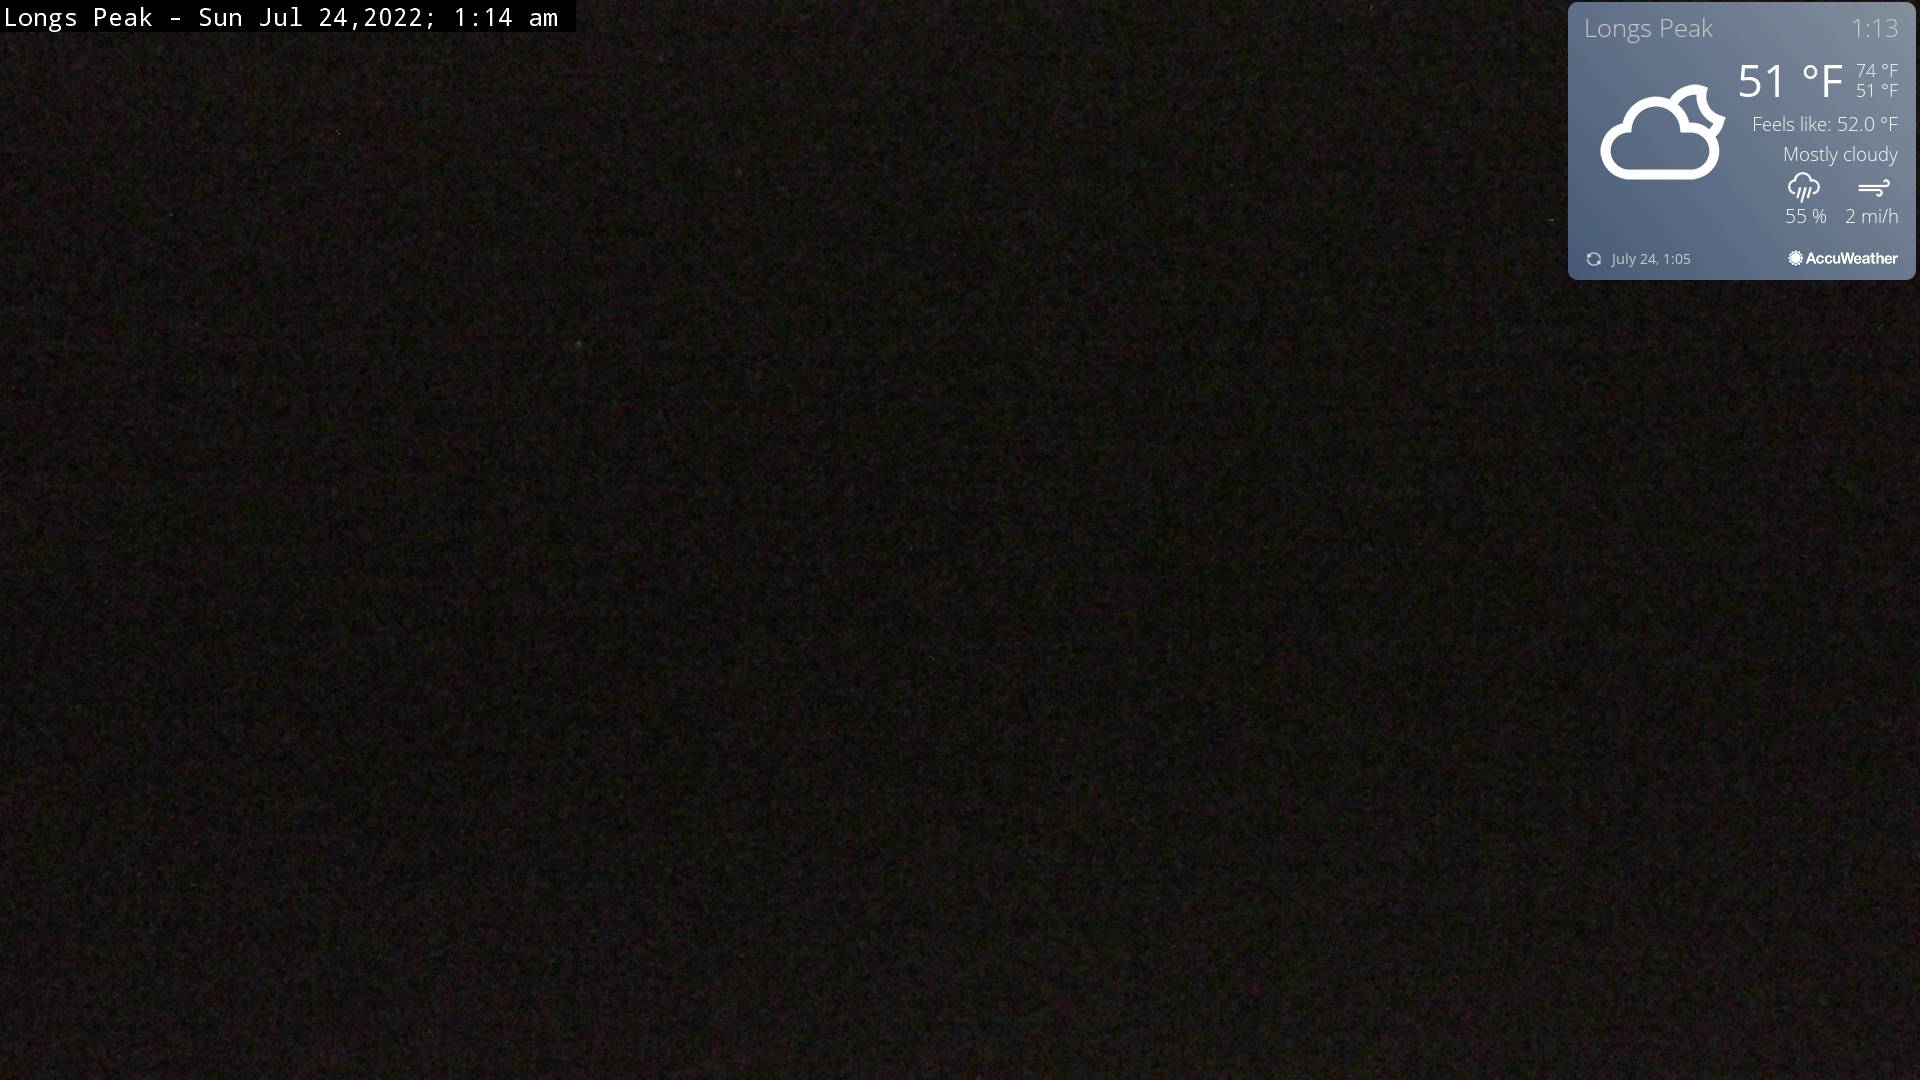 Longs Peak Webcam